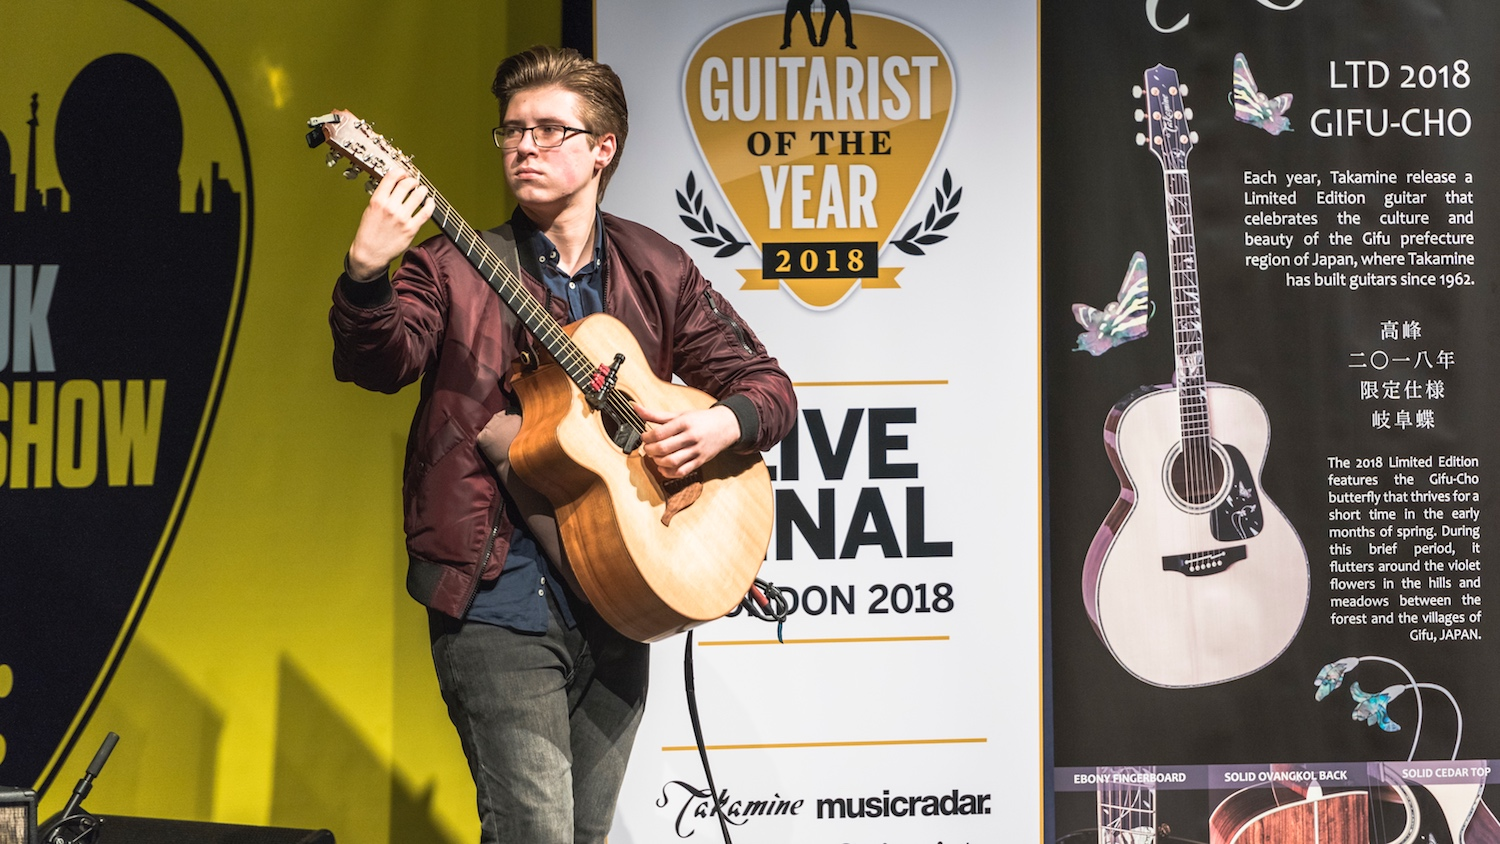 Want to win Acoustic Guitarist of the Year 2019? Last year's winner reveals his biggest tips | MusicRadar